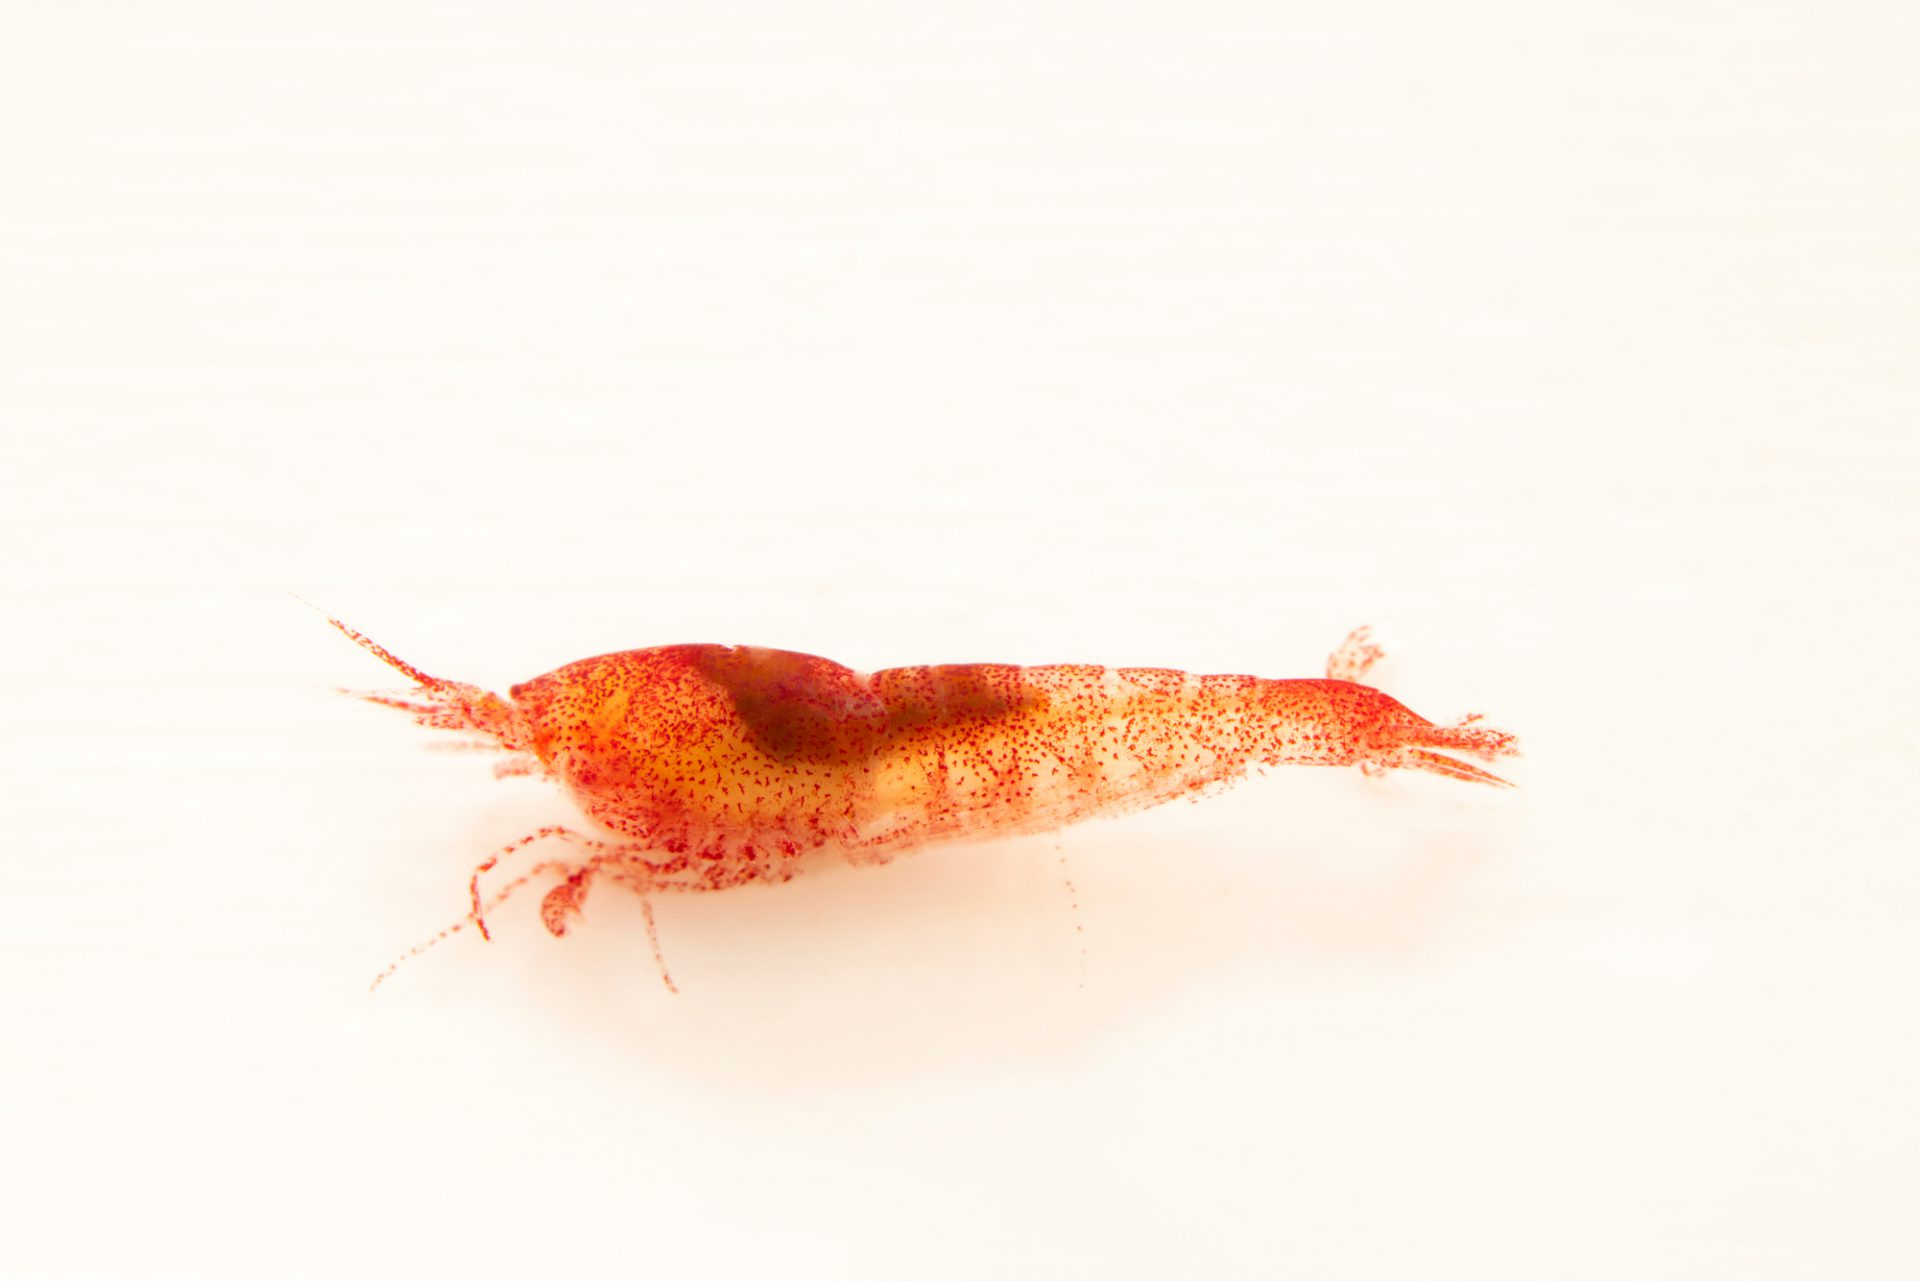 Photo: An ancialine shrimp (anchialine rubra) at the Auburn University Natural History Museum.